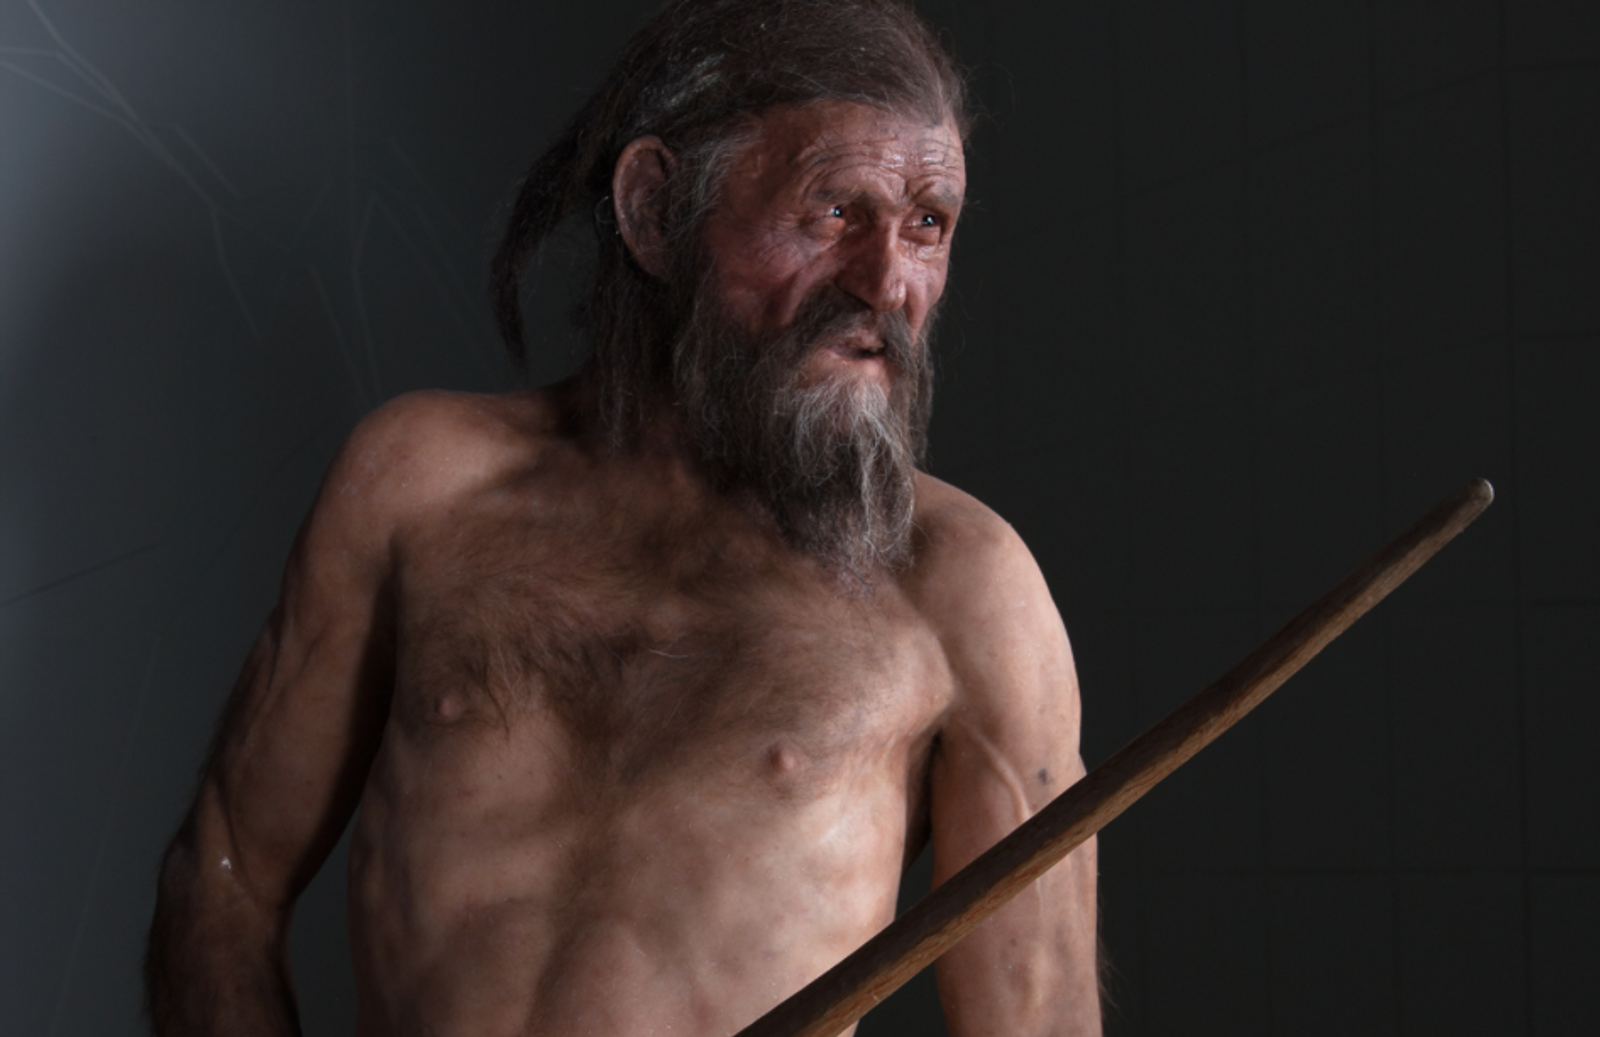 5 Surprising Facts About Otzi the Iceman